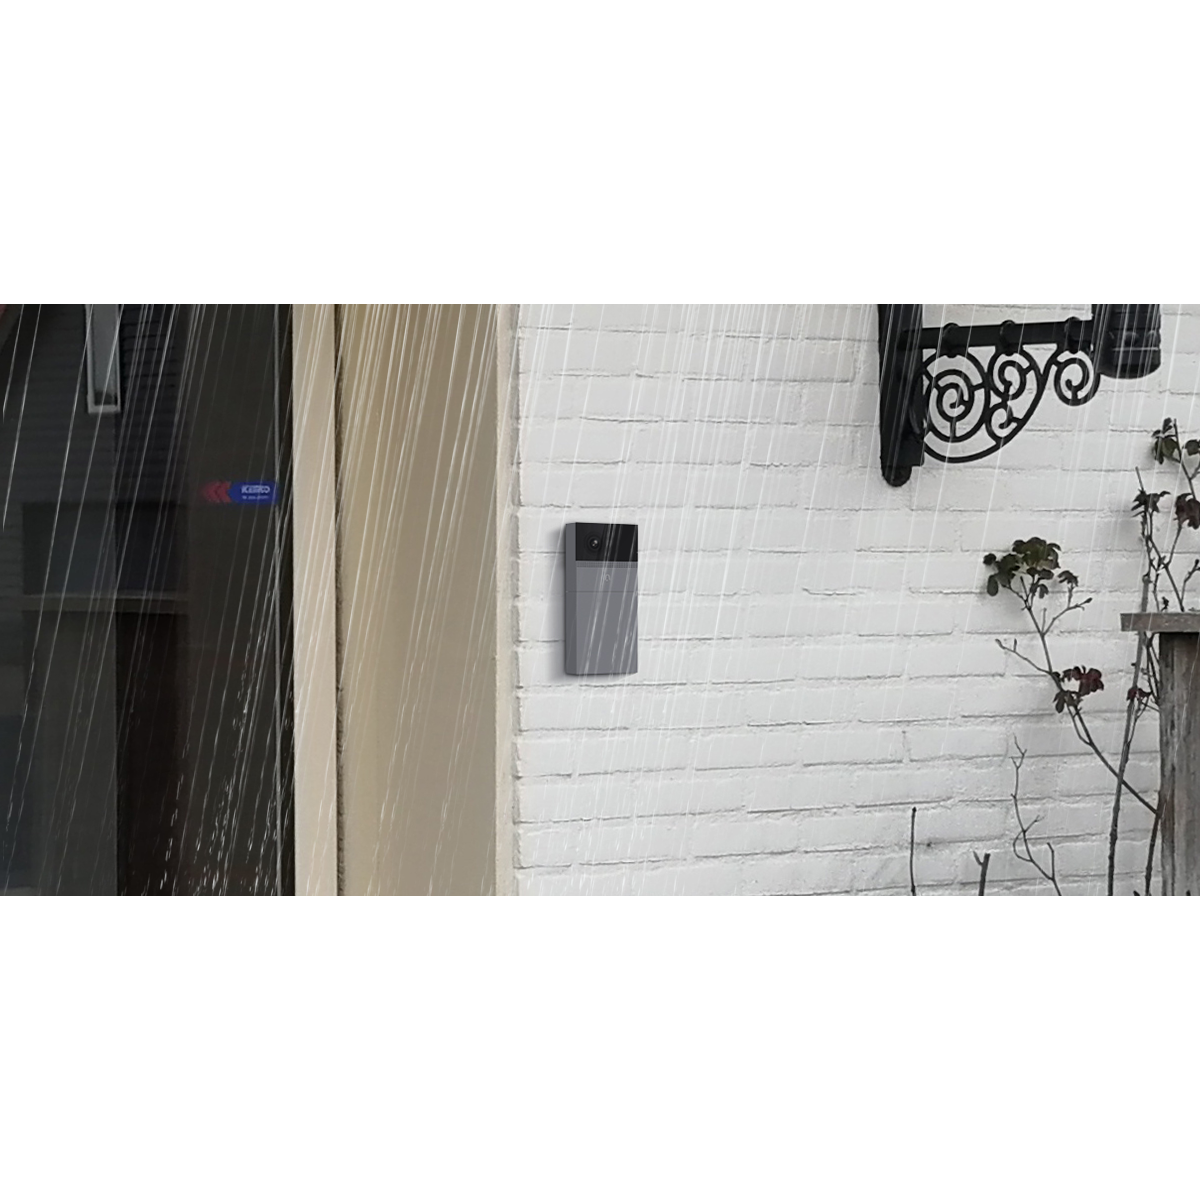 B1 Outdoor 1080p Wi-Fi Rechargeable Battery-Powered Video Doorbell Camera